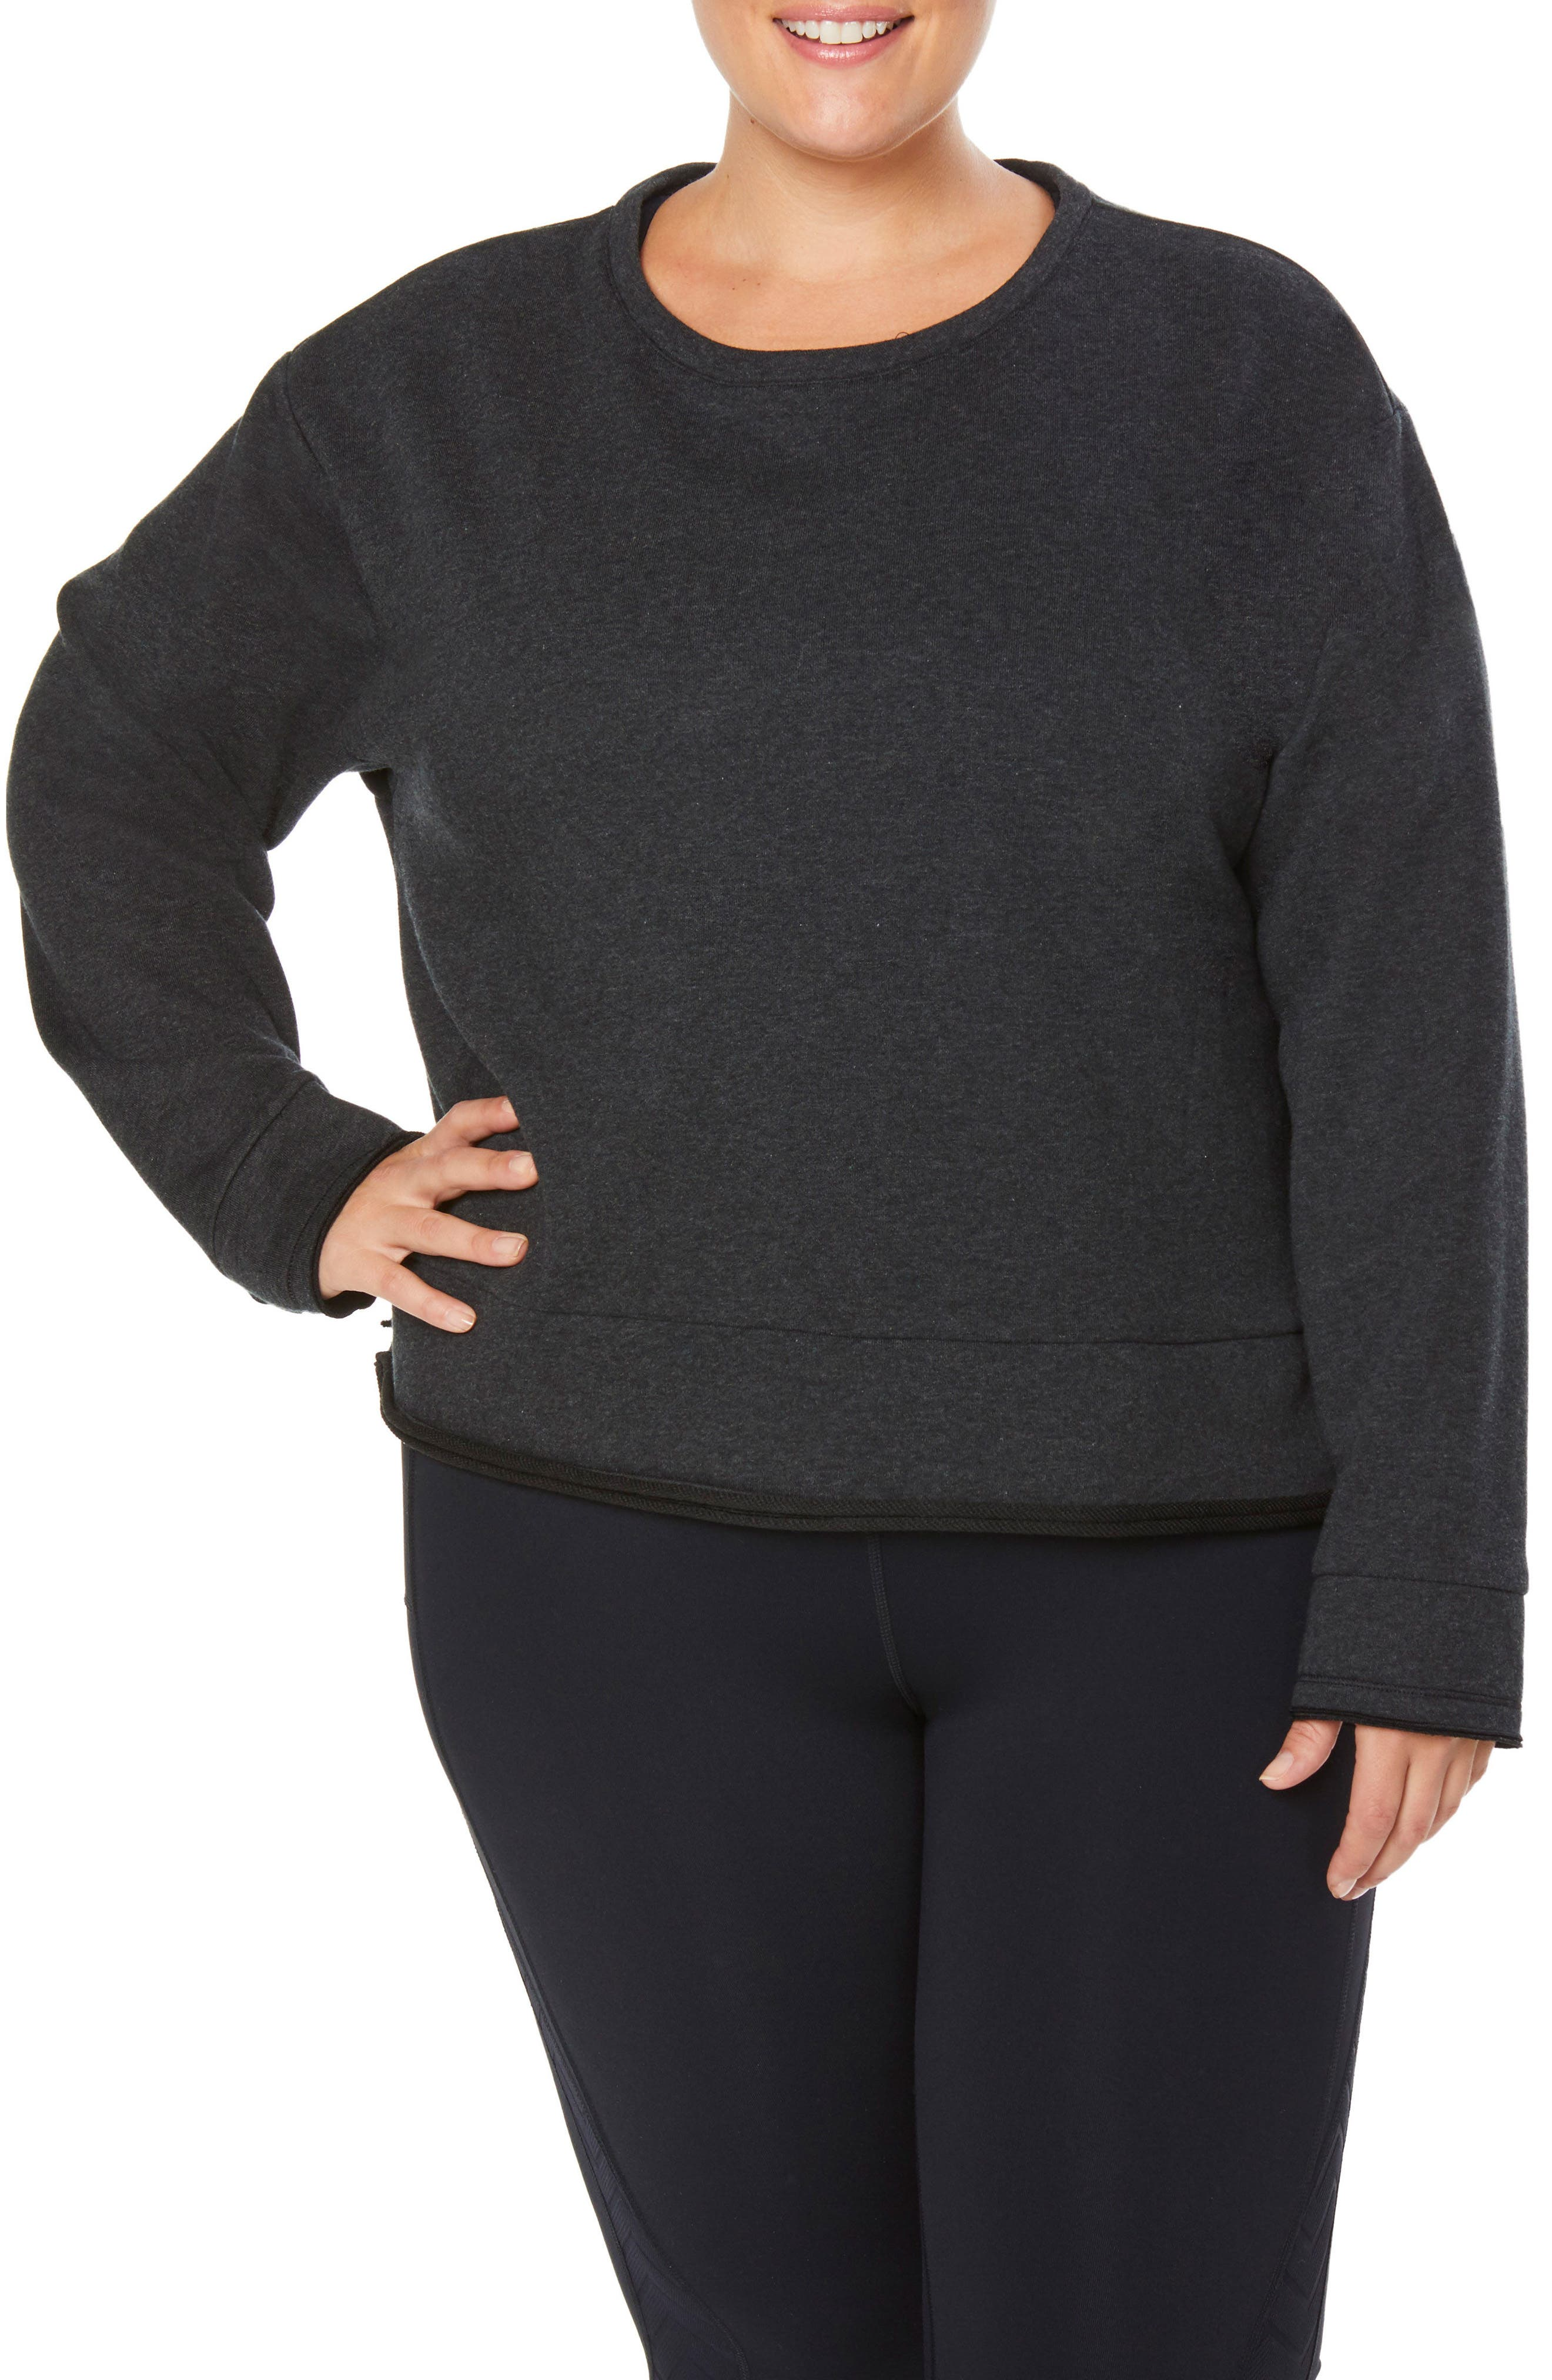 SHAPE ACTIVEWEAR Extended Day Sweatshirt, Main, color, 001